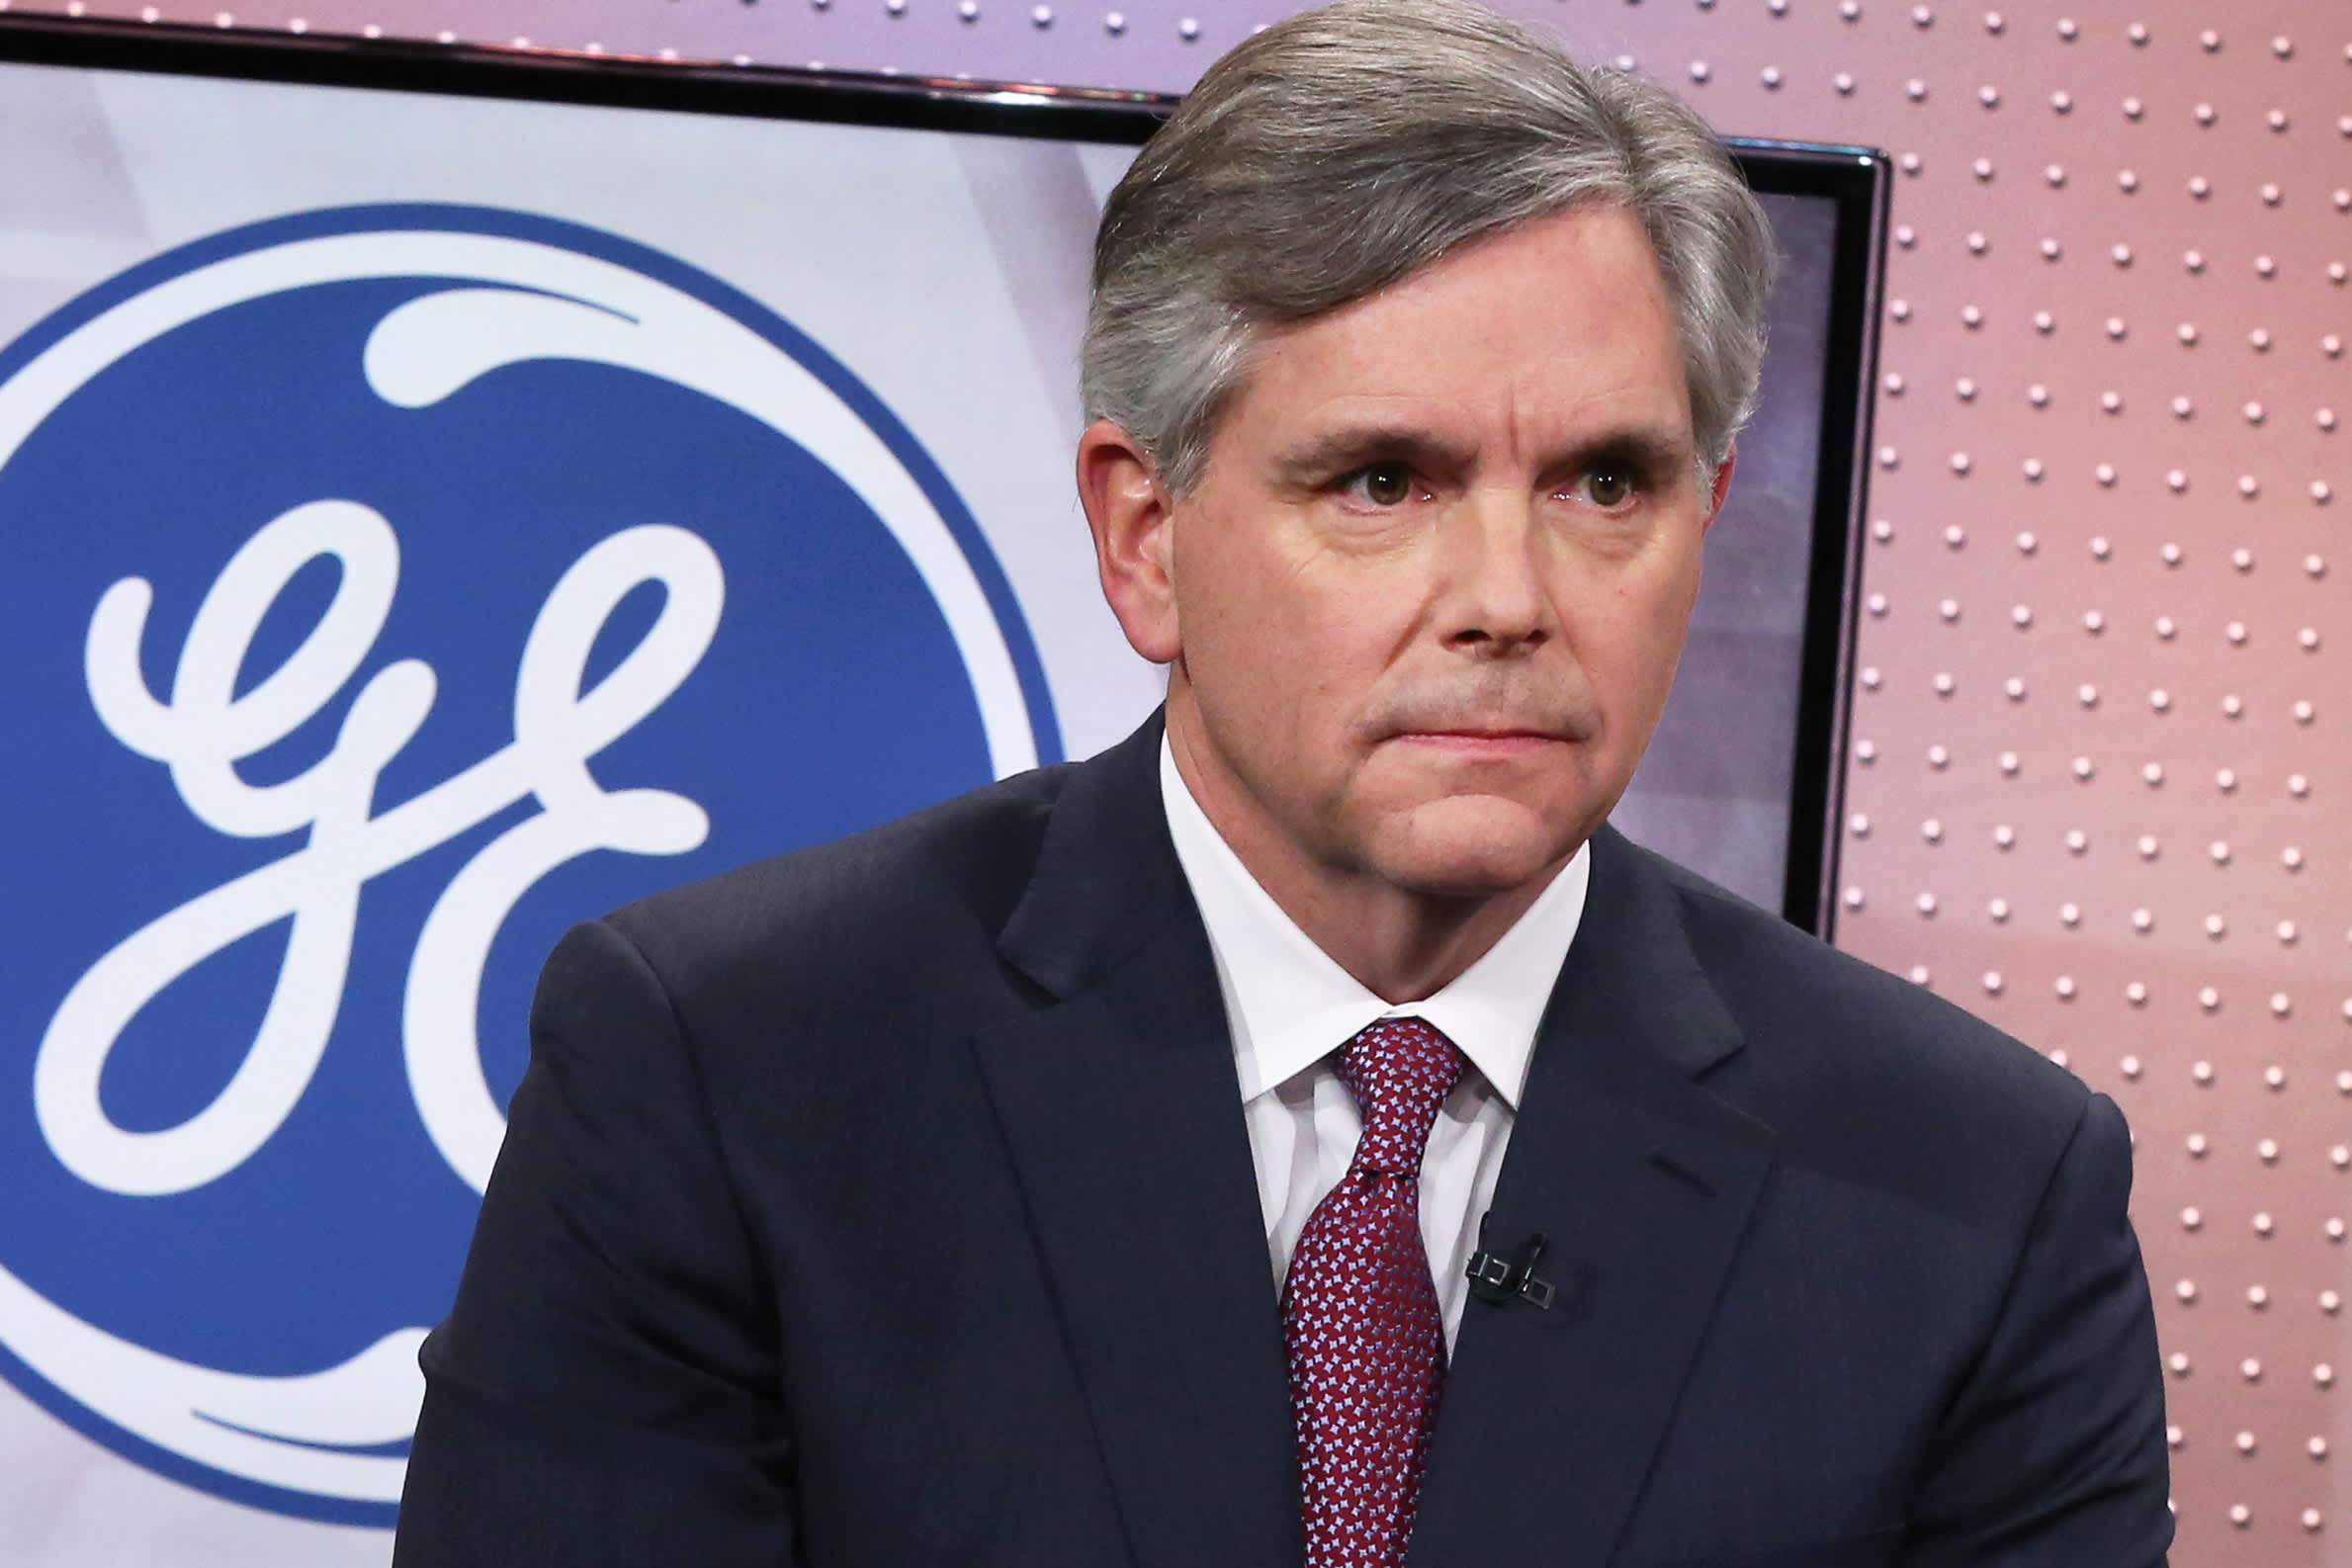 Here are the biggest analyst calls of the day: General Electric, Molson Coors, Deere & more